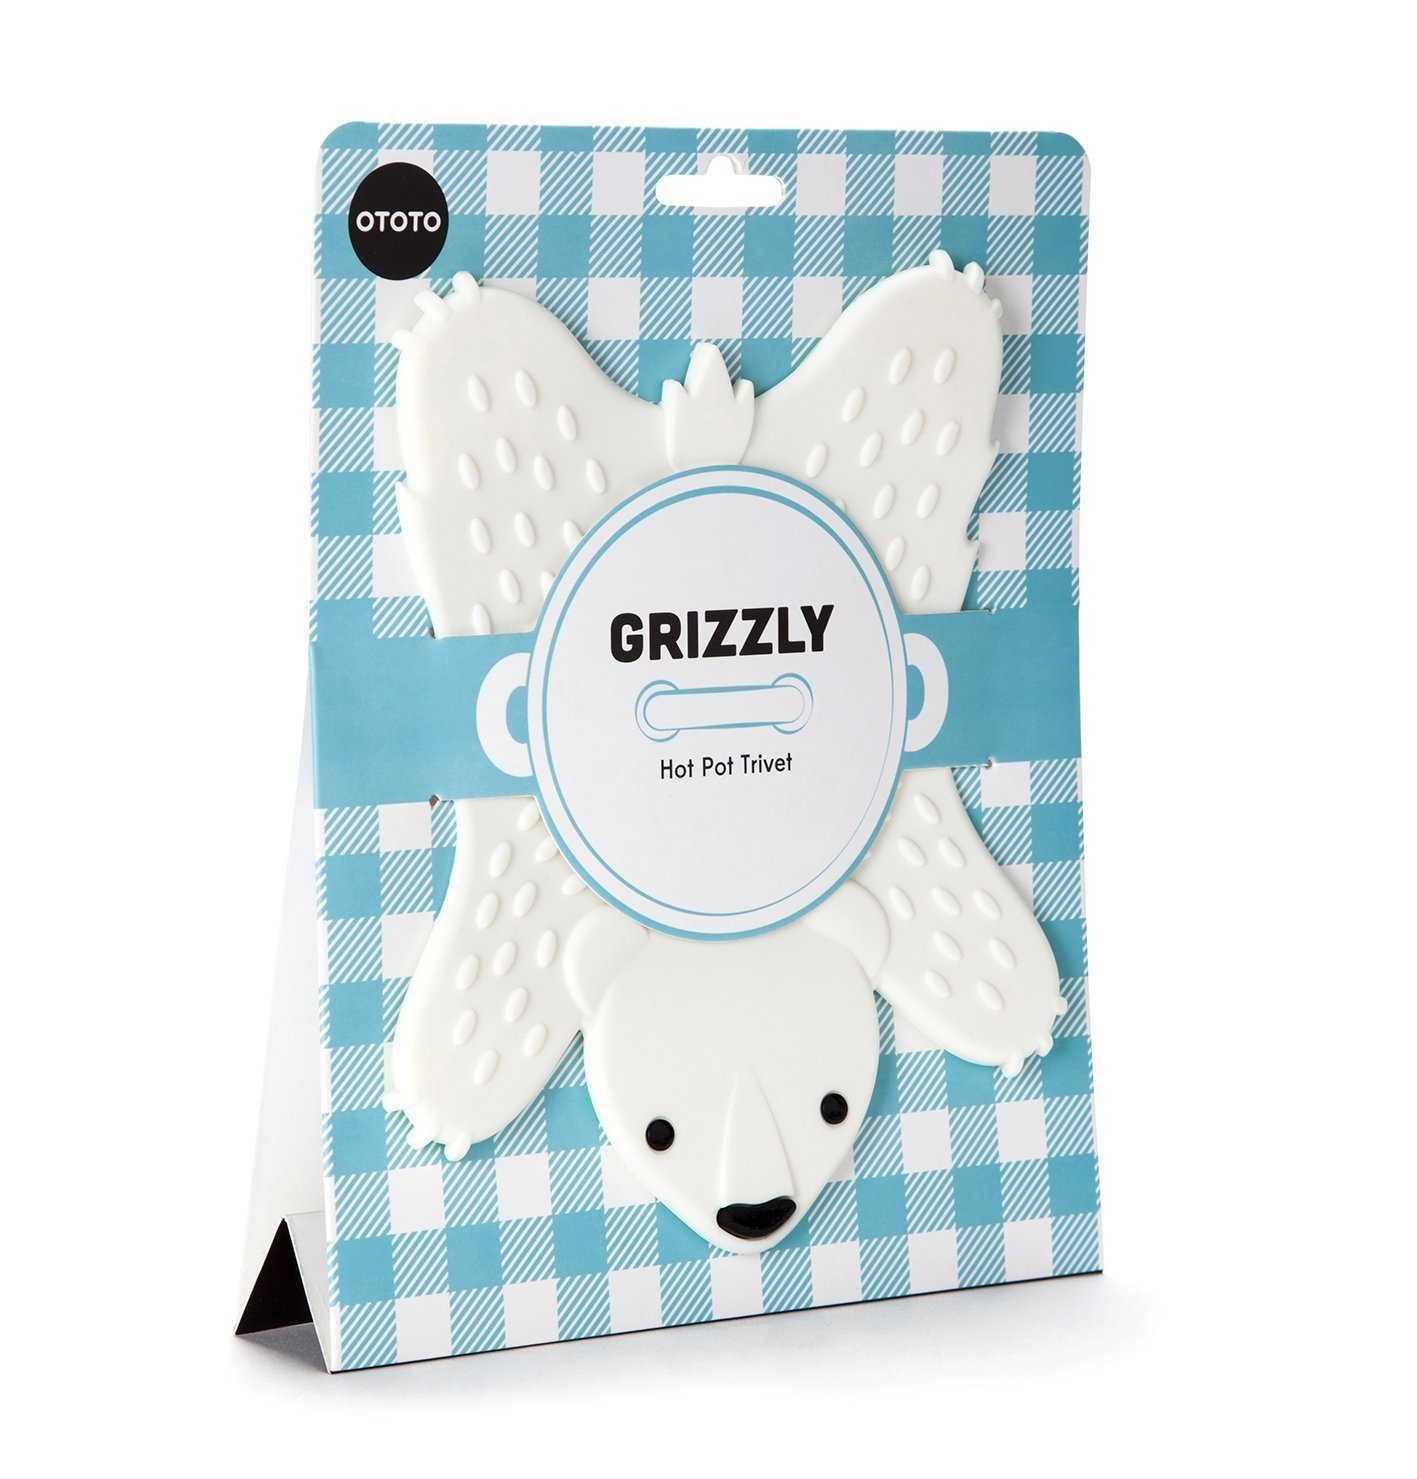 Grizzly Hot Pot Trivet - White - OT865